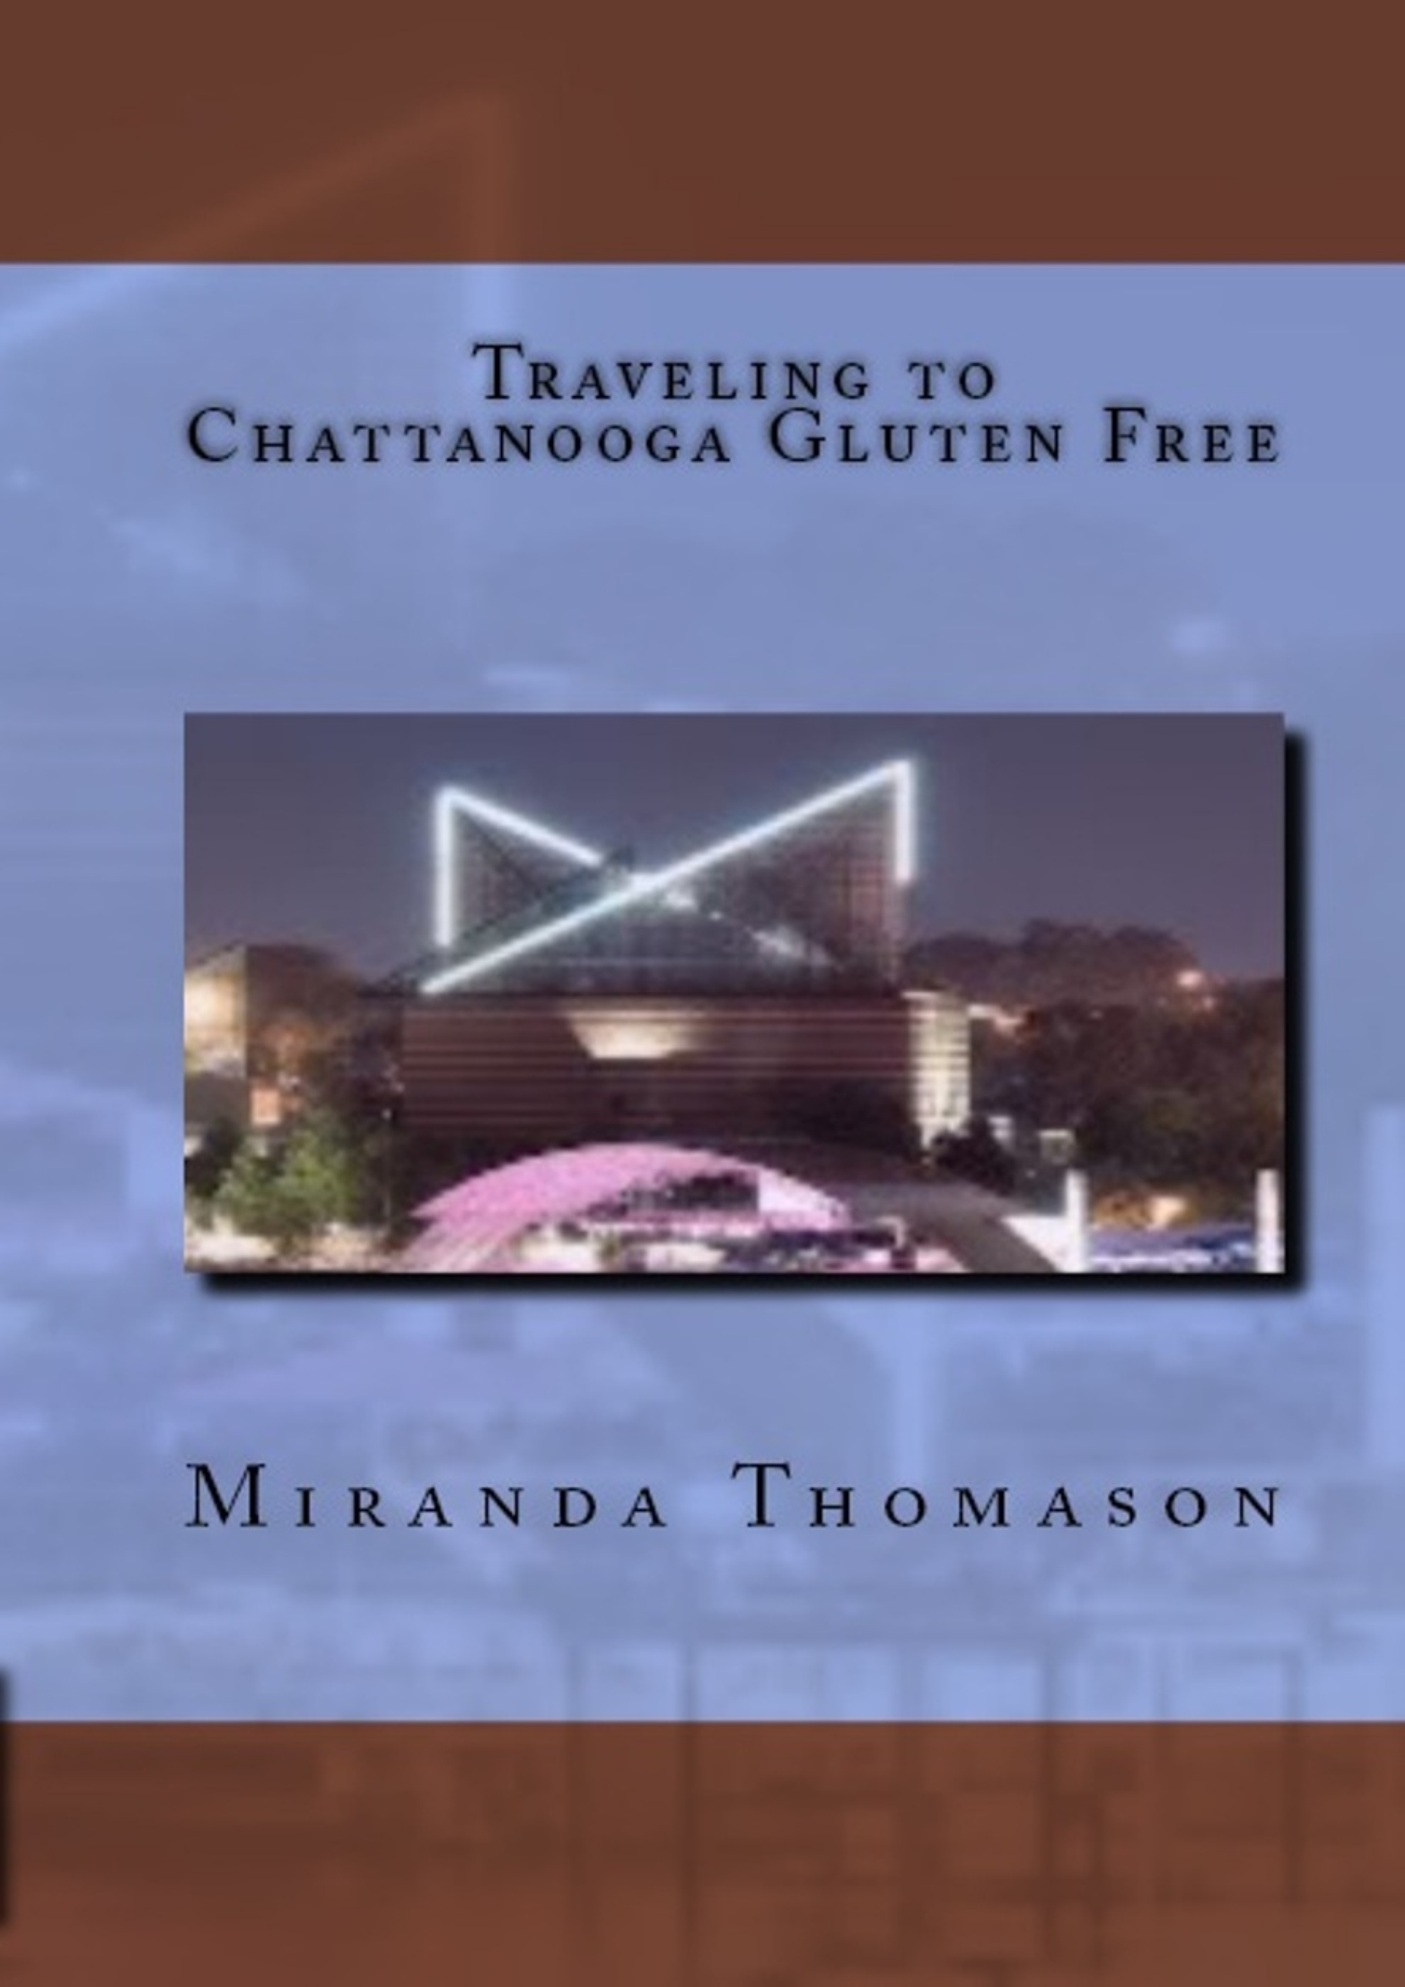 Traveling to Chattanooga Gluten Free